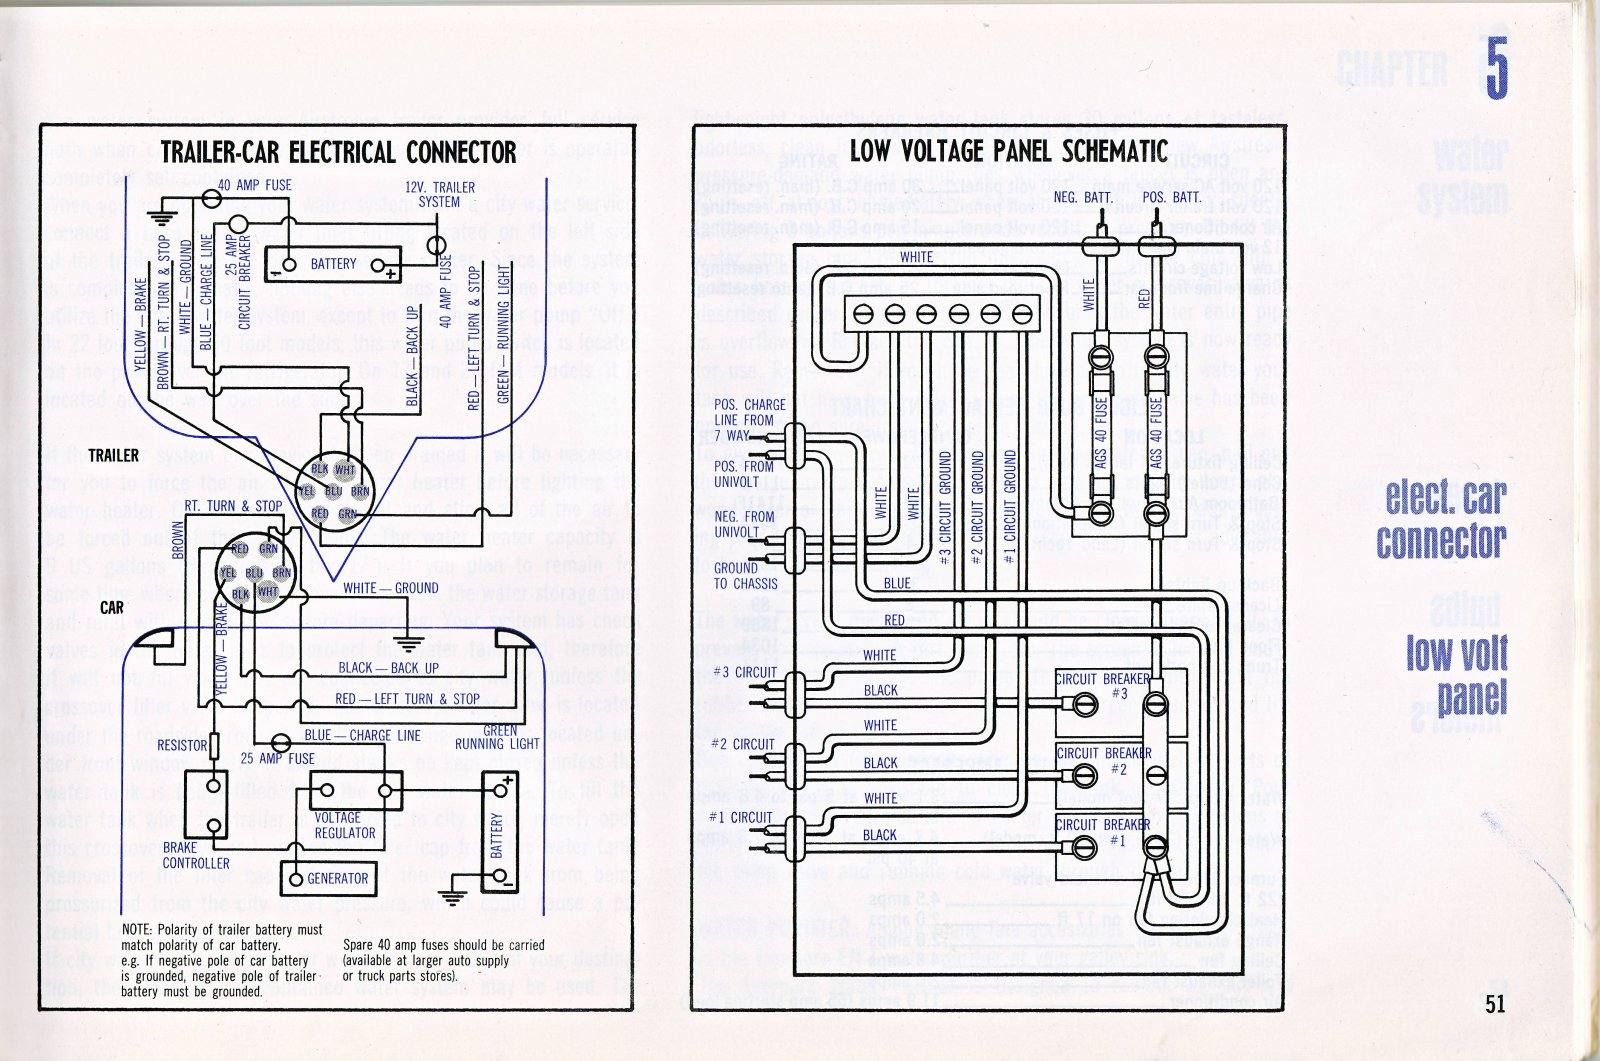 yacht club trailer wiring diagram yacht club trailer